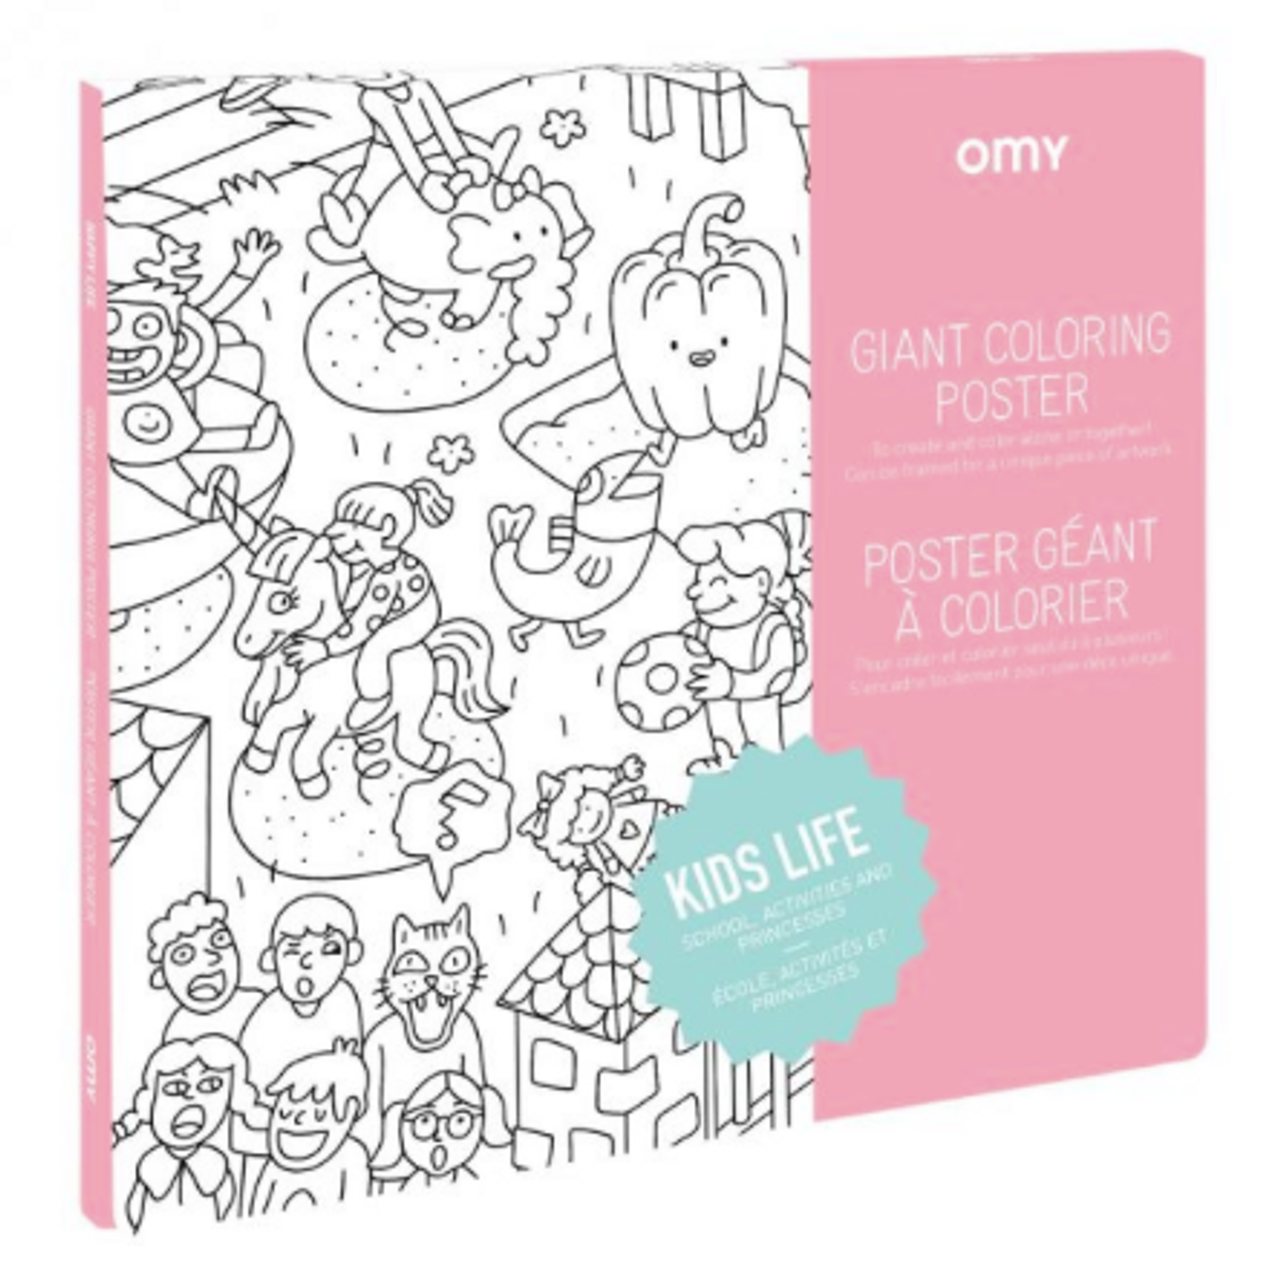 Giant Coloring Poster - Kids Life